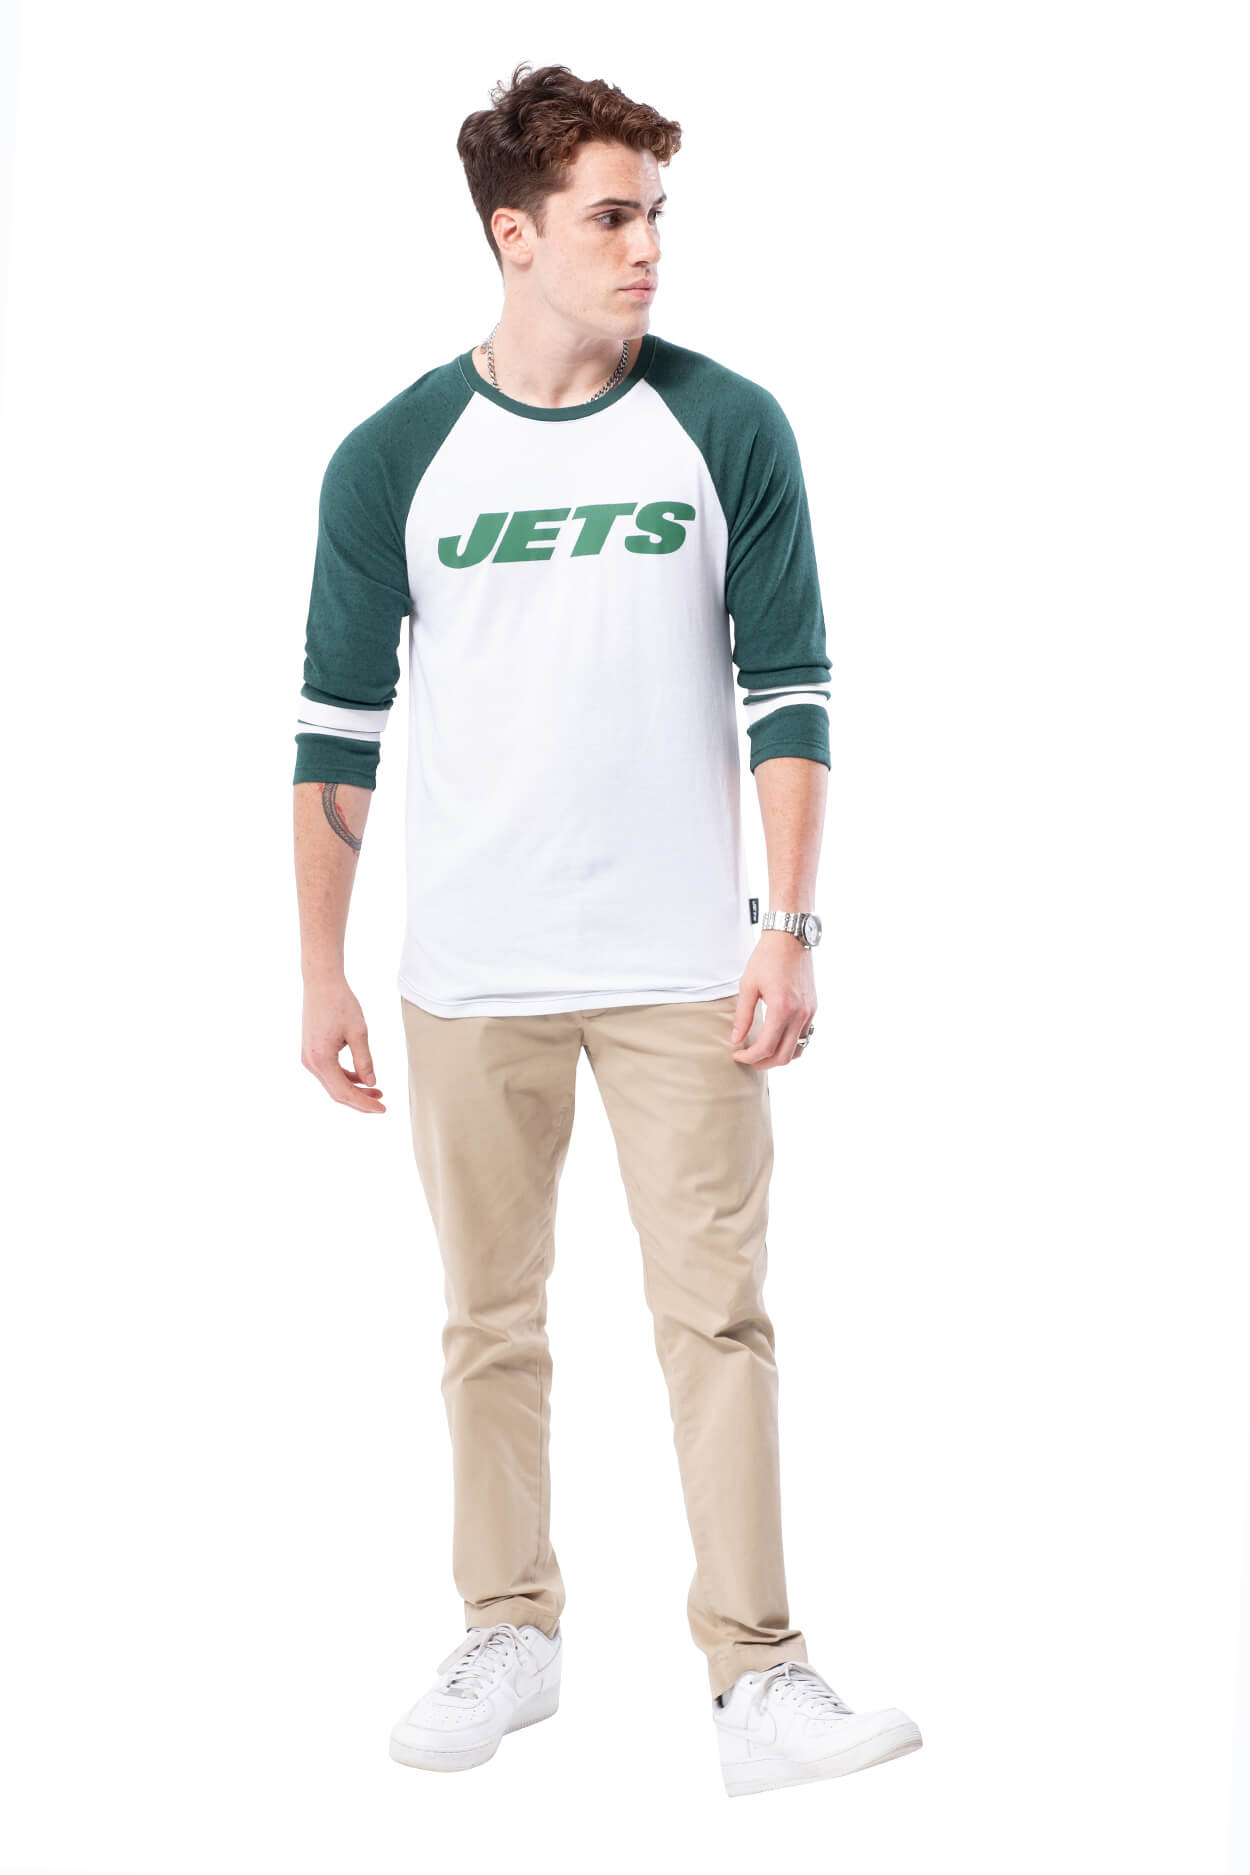 NFL New York Jets Men's Baseball Tee|New York Jets